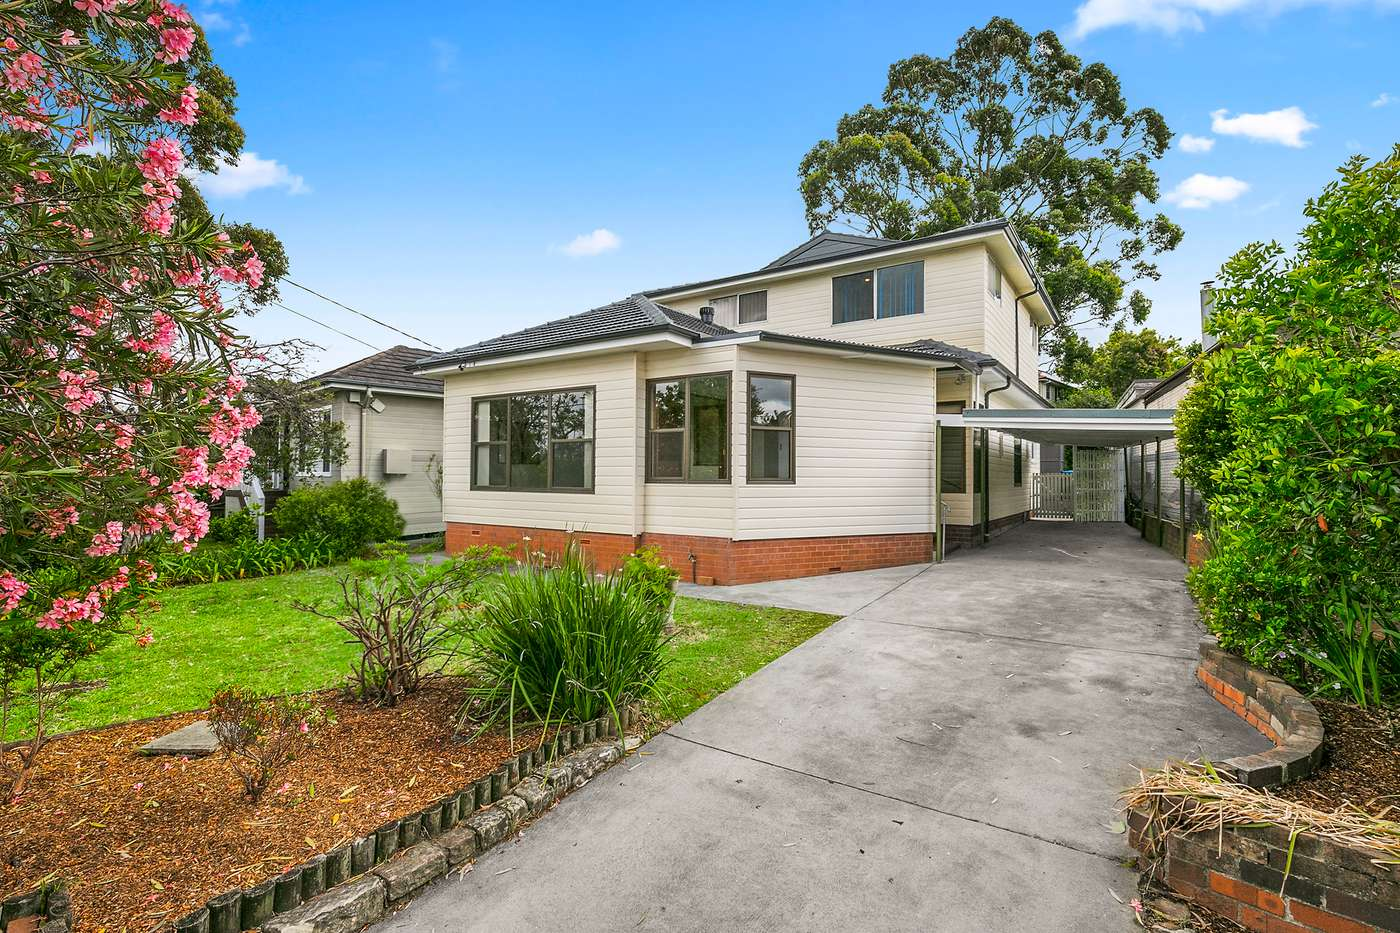 Main view of Homely house listing, 4 Wonga Street, North Balgowlah, NSW 2093